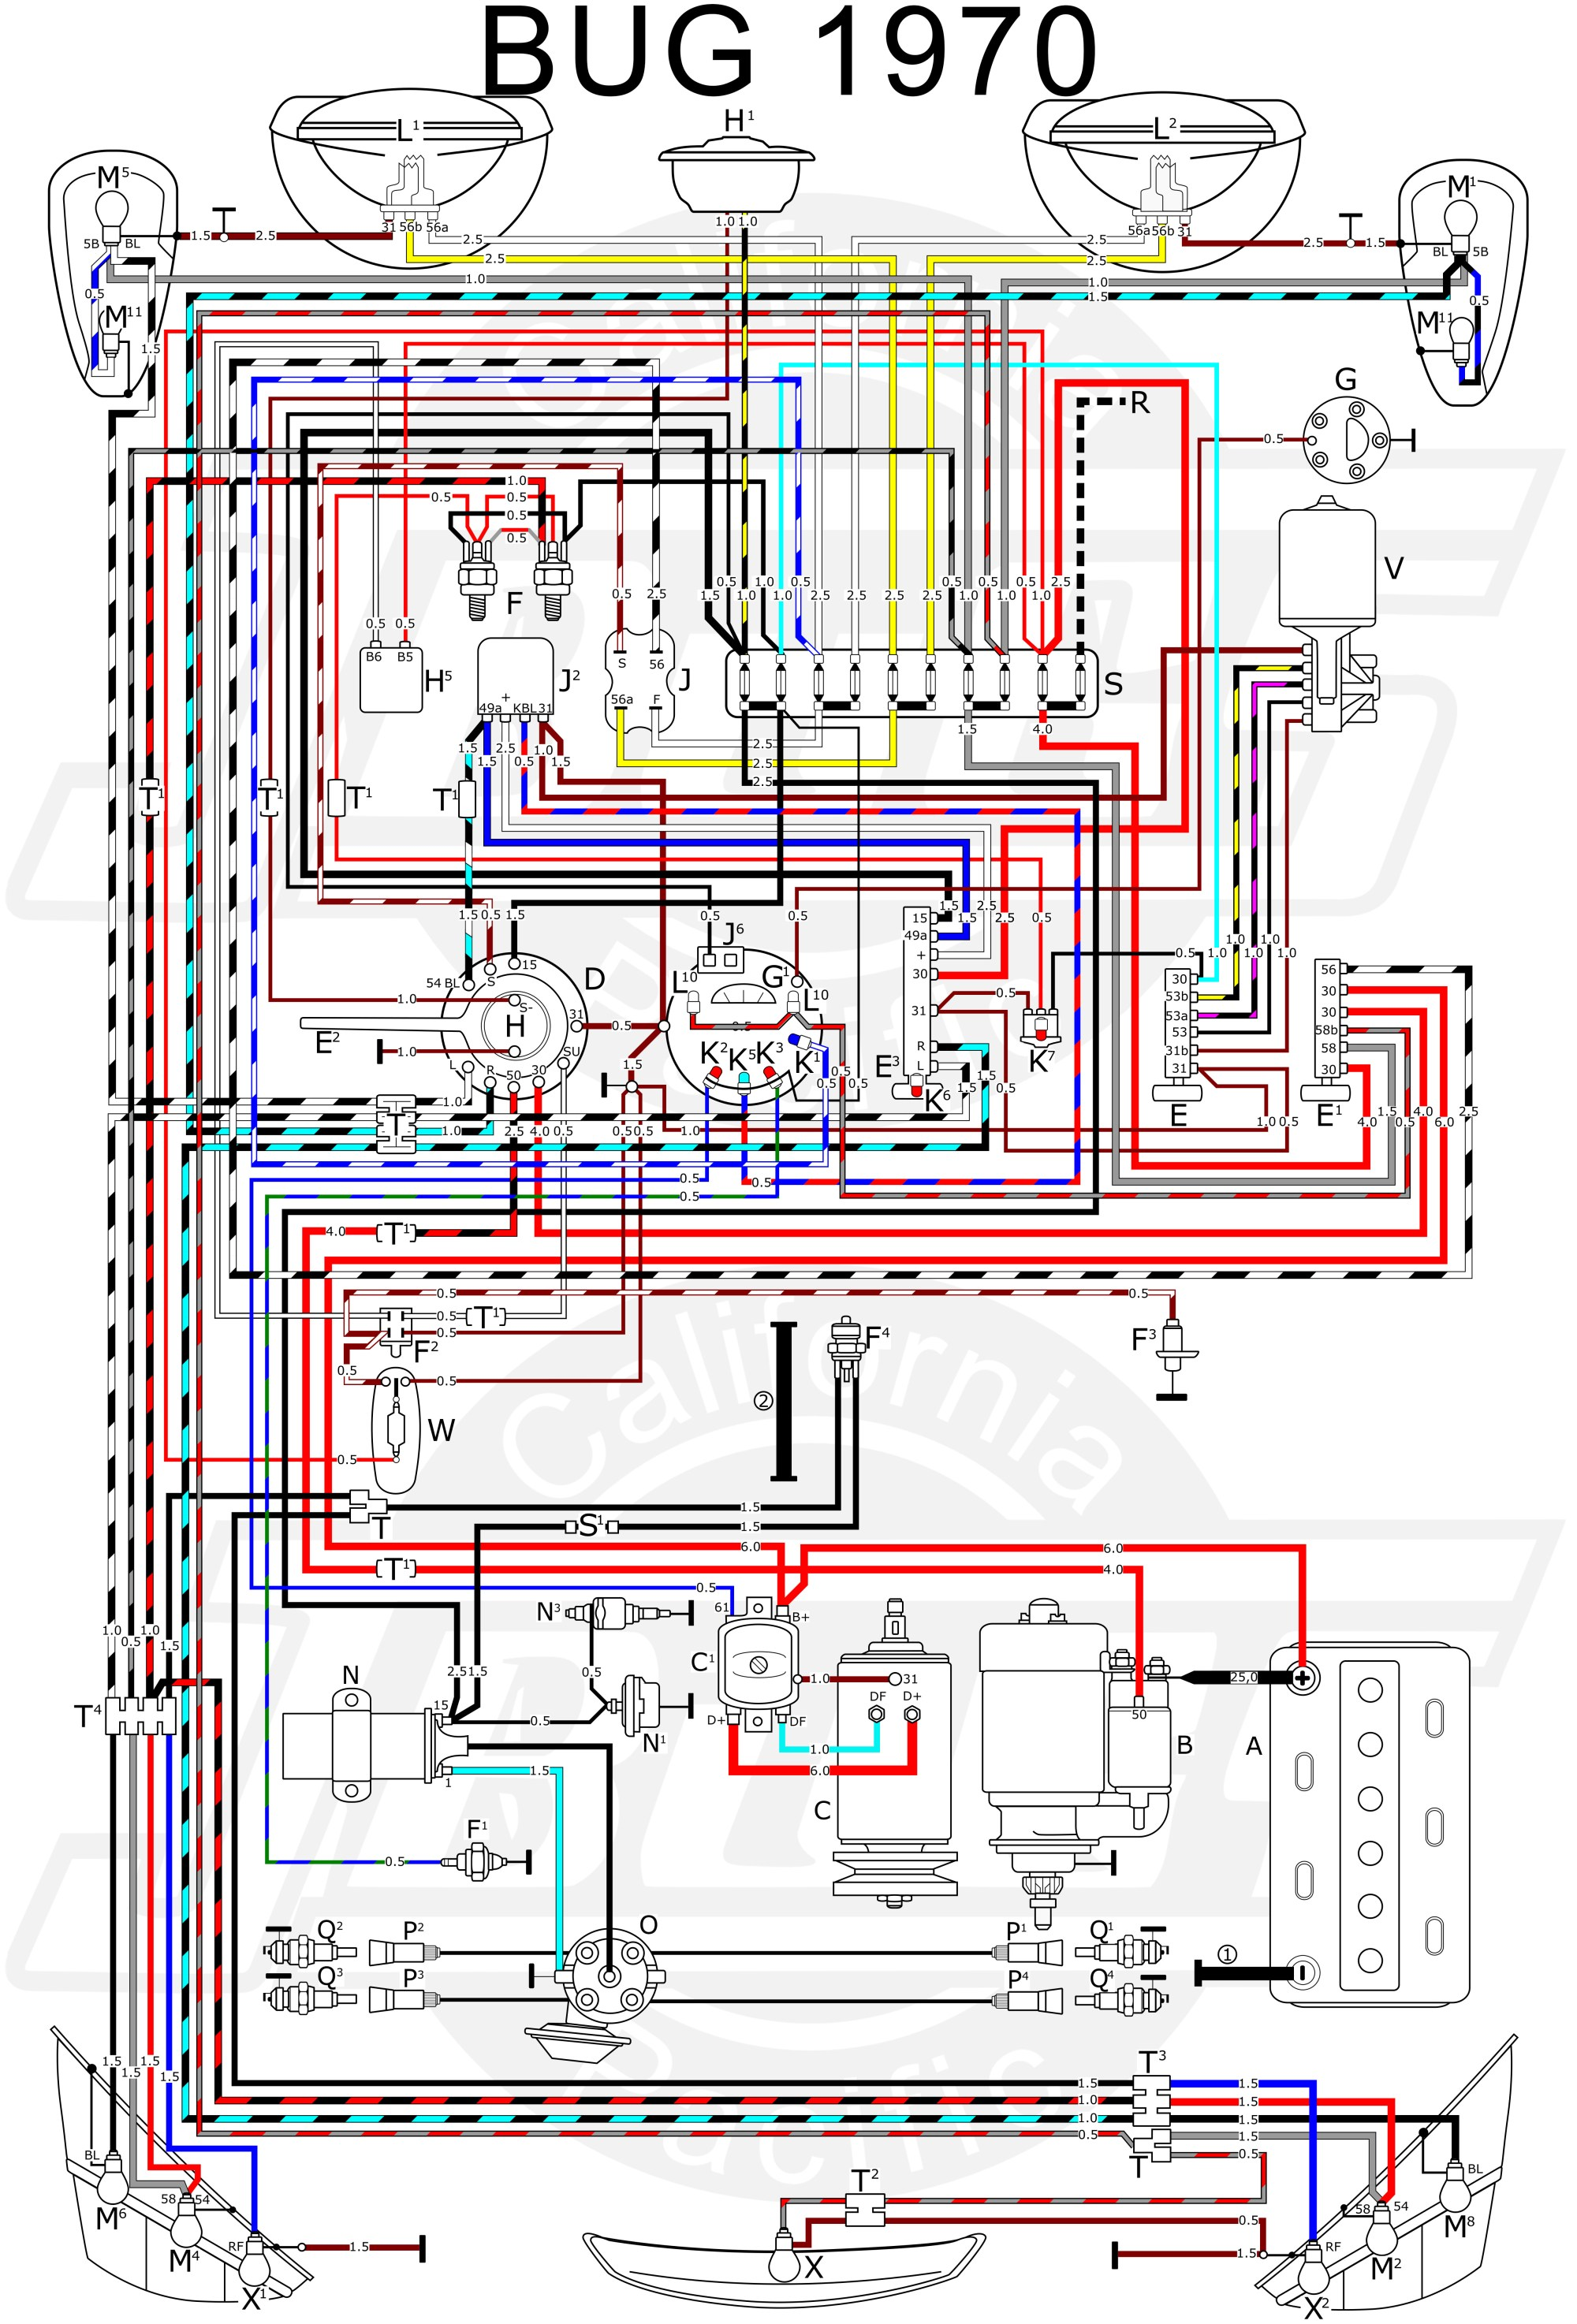 hight resolution of vw bug fuse diagram wiring diagram rows 2012 vw beetle fuse diagram 1971 vw beetle fuse